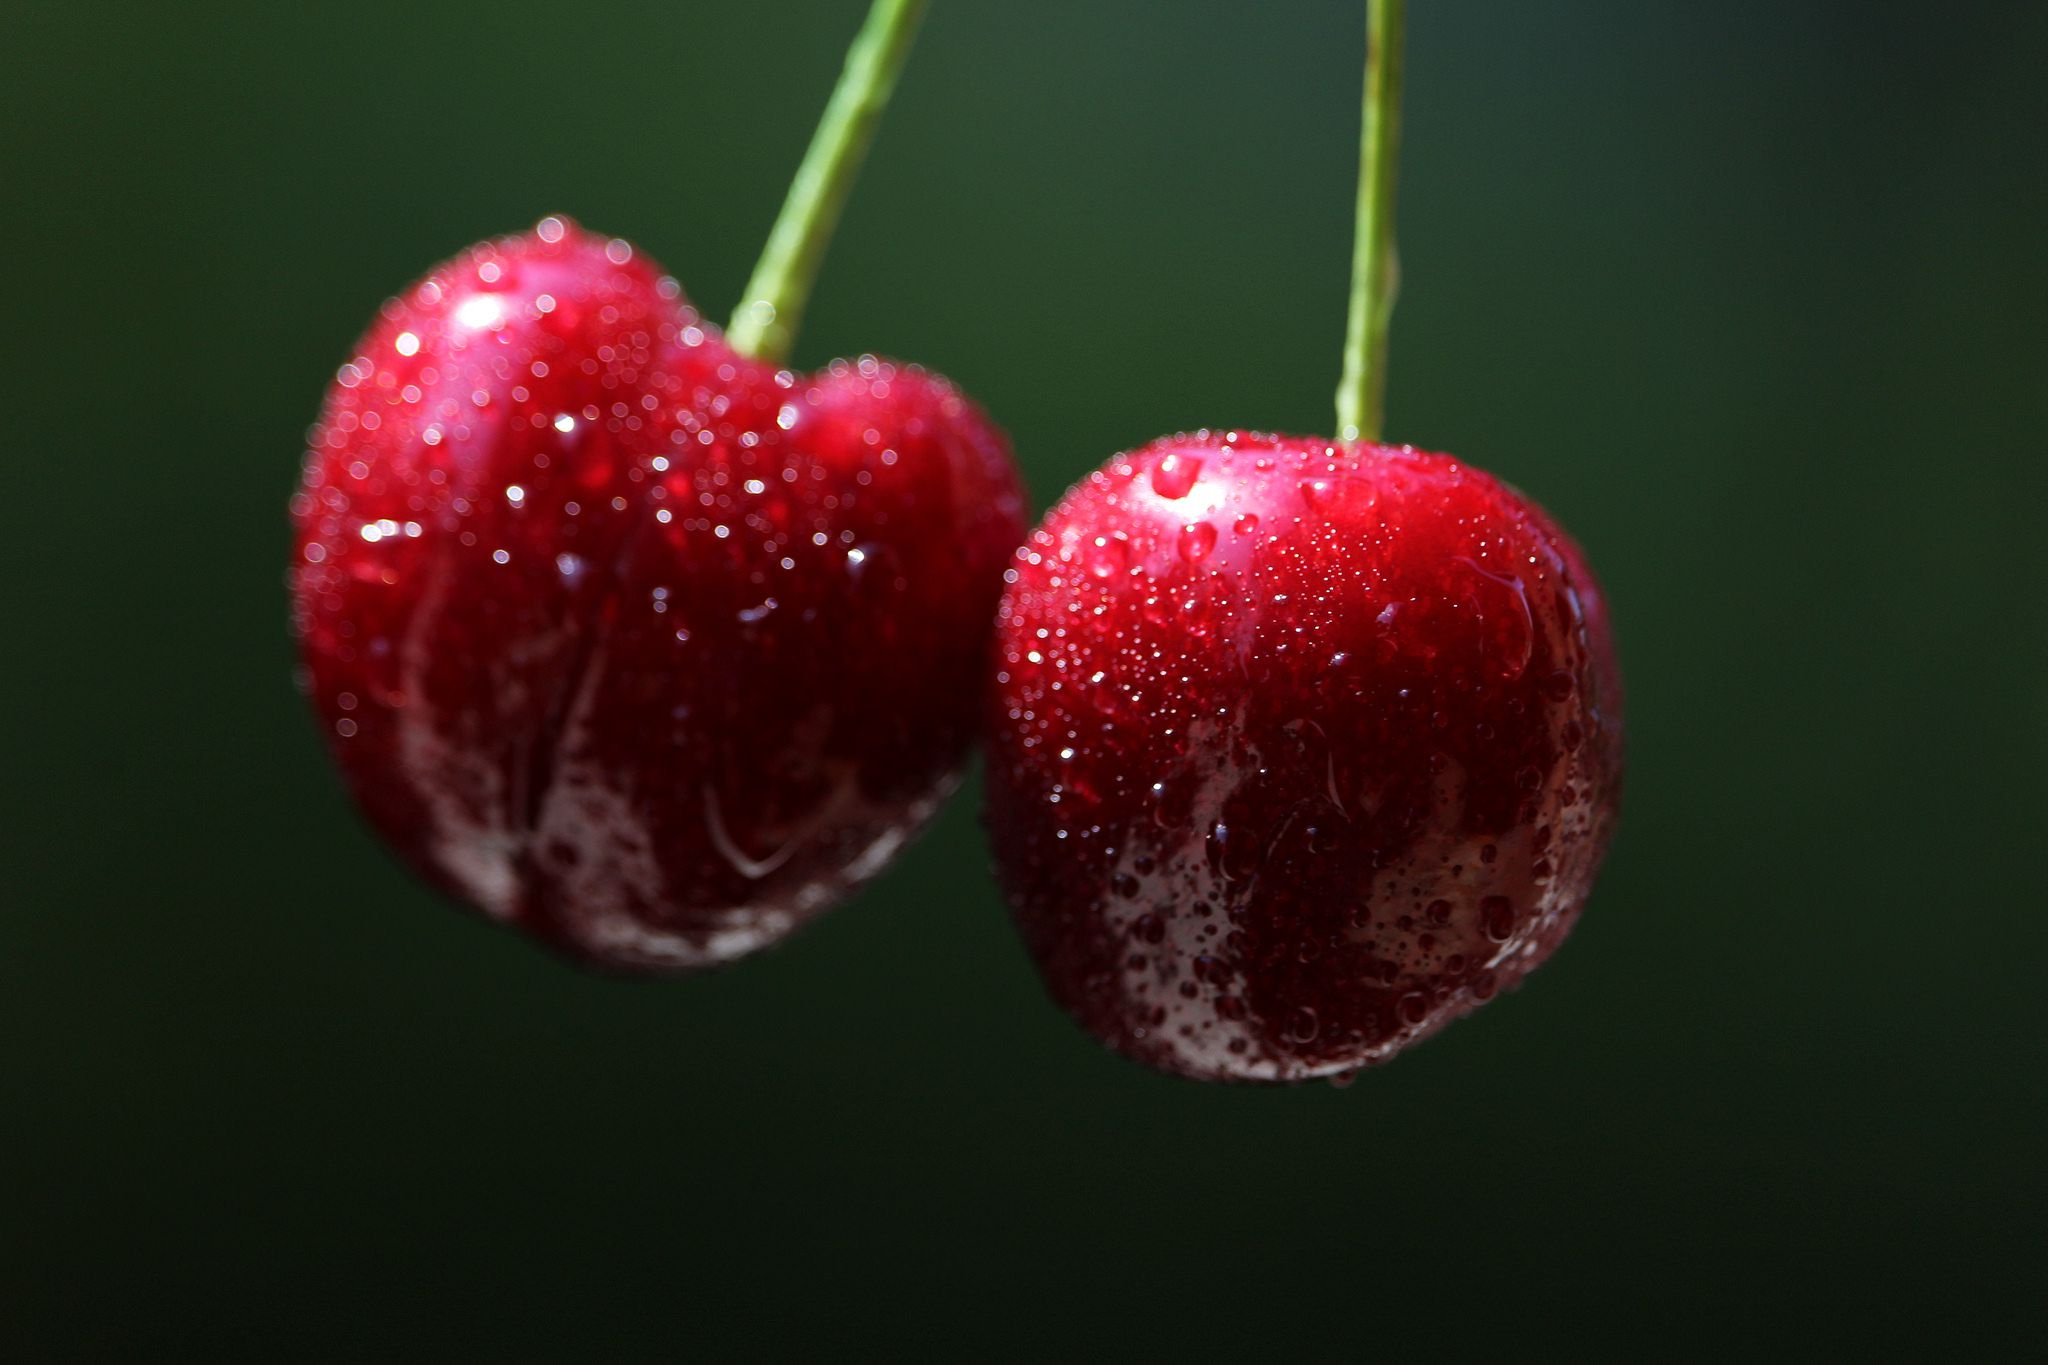 Two cherry with water drops